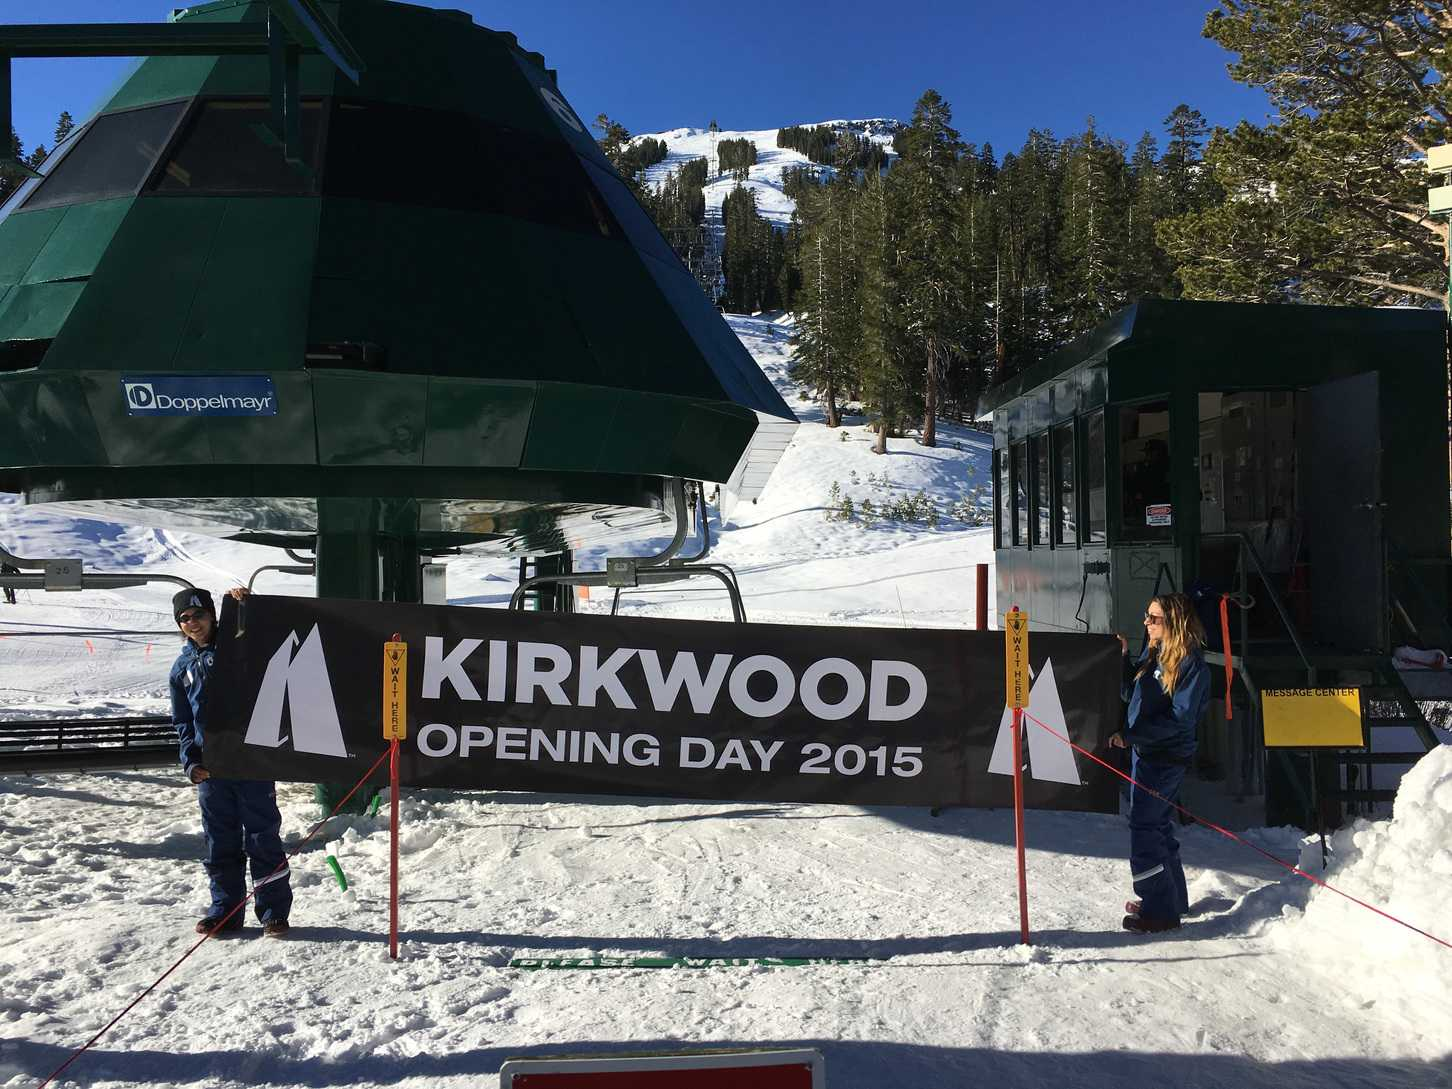 On Nov. 14 Kirkwood Mountain Resort turned on its lifts for the first time this season for about 500 skiers.